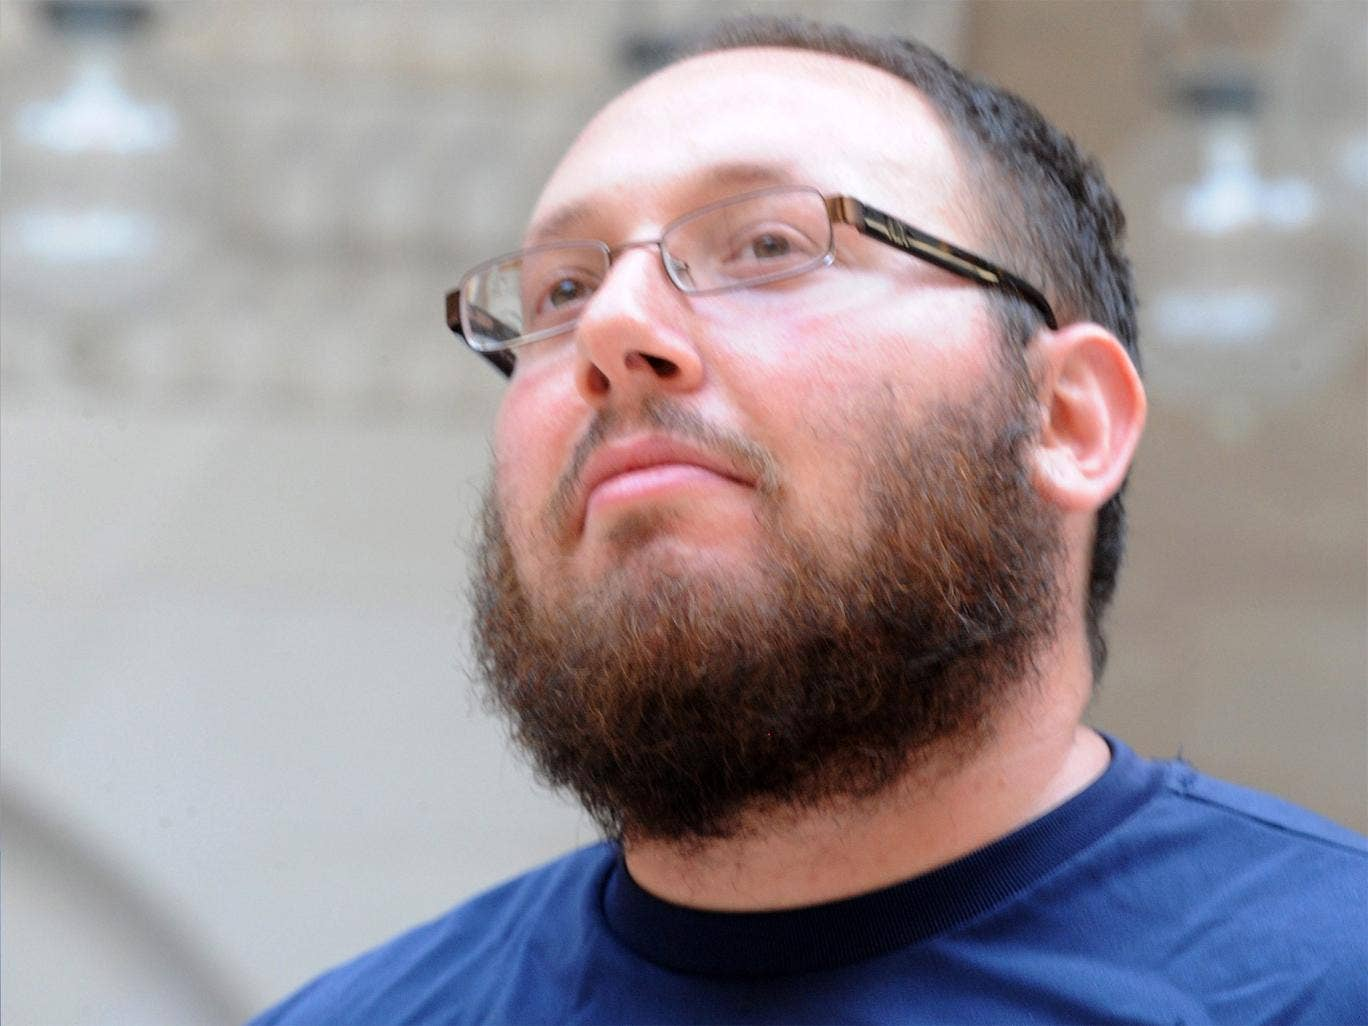 Steven Sotloff, pictured in Manama, Bahrain, in 2010